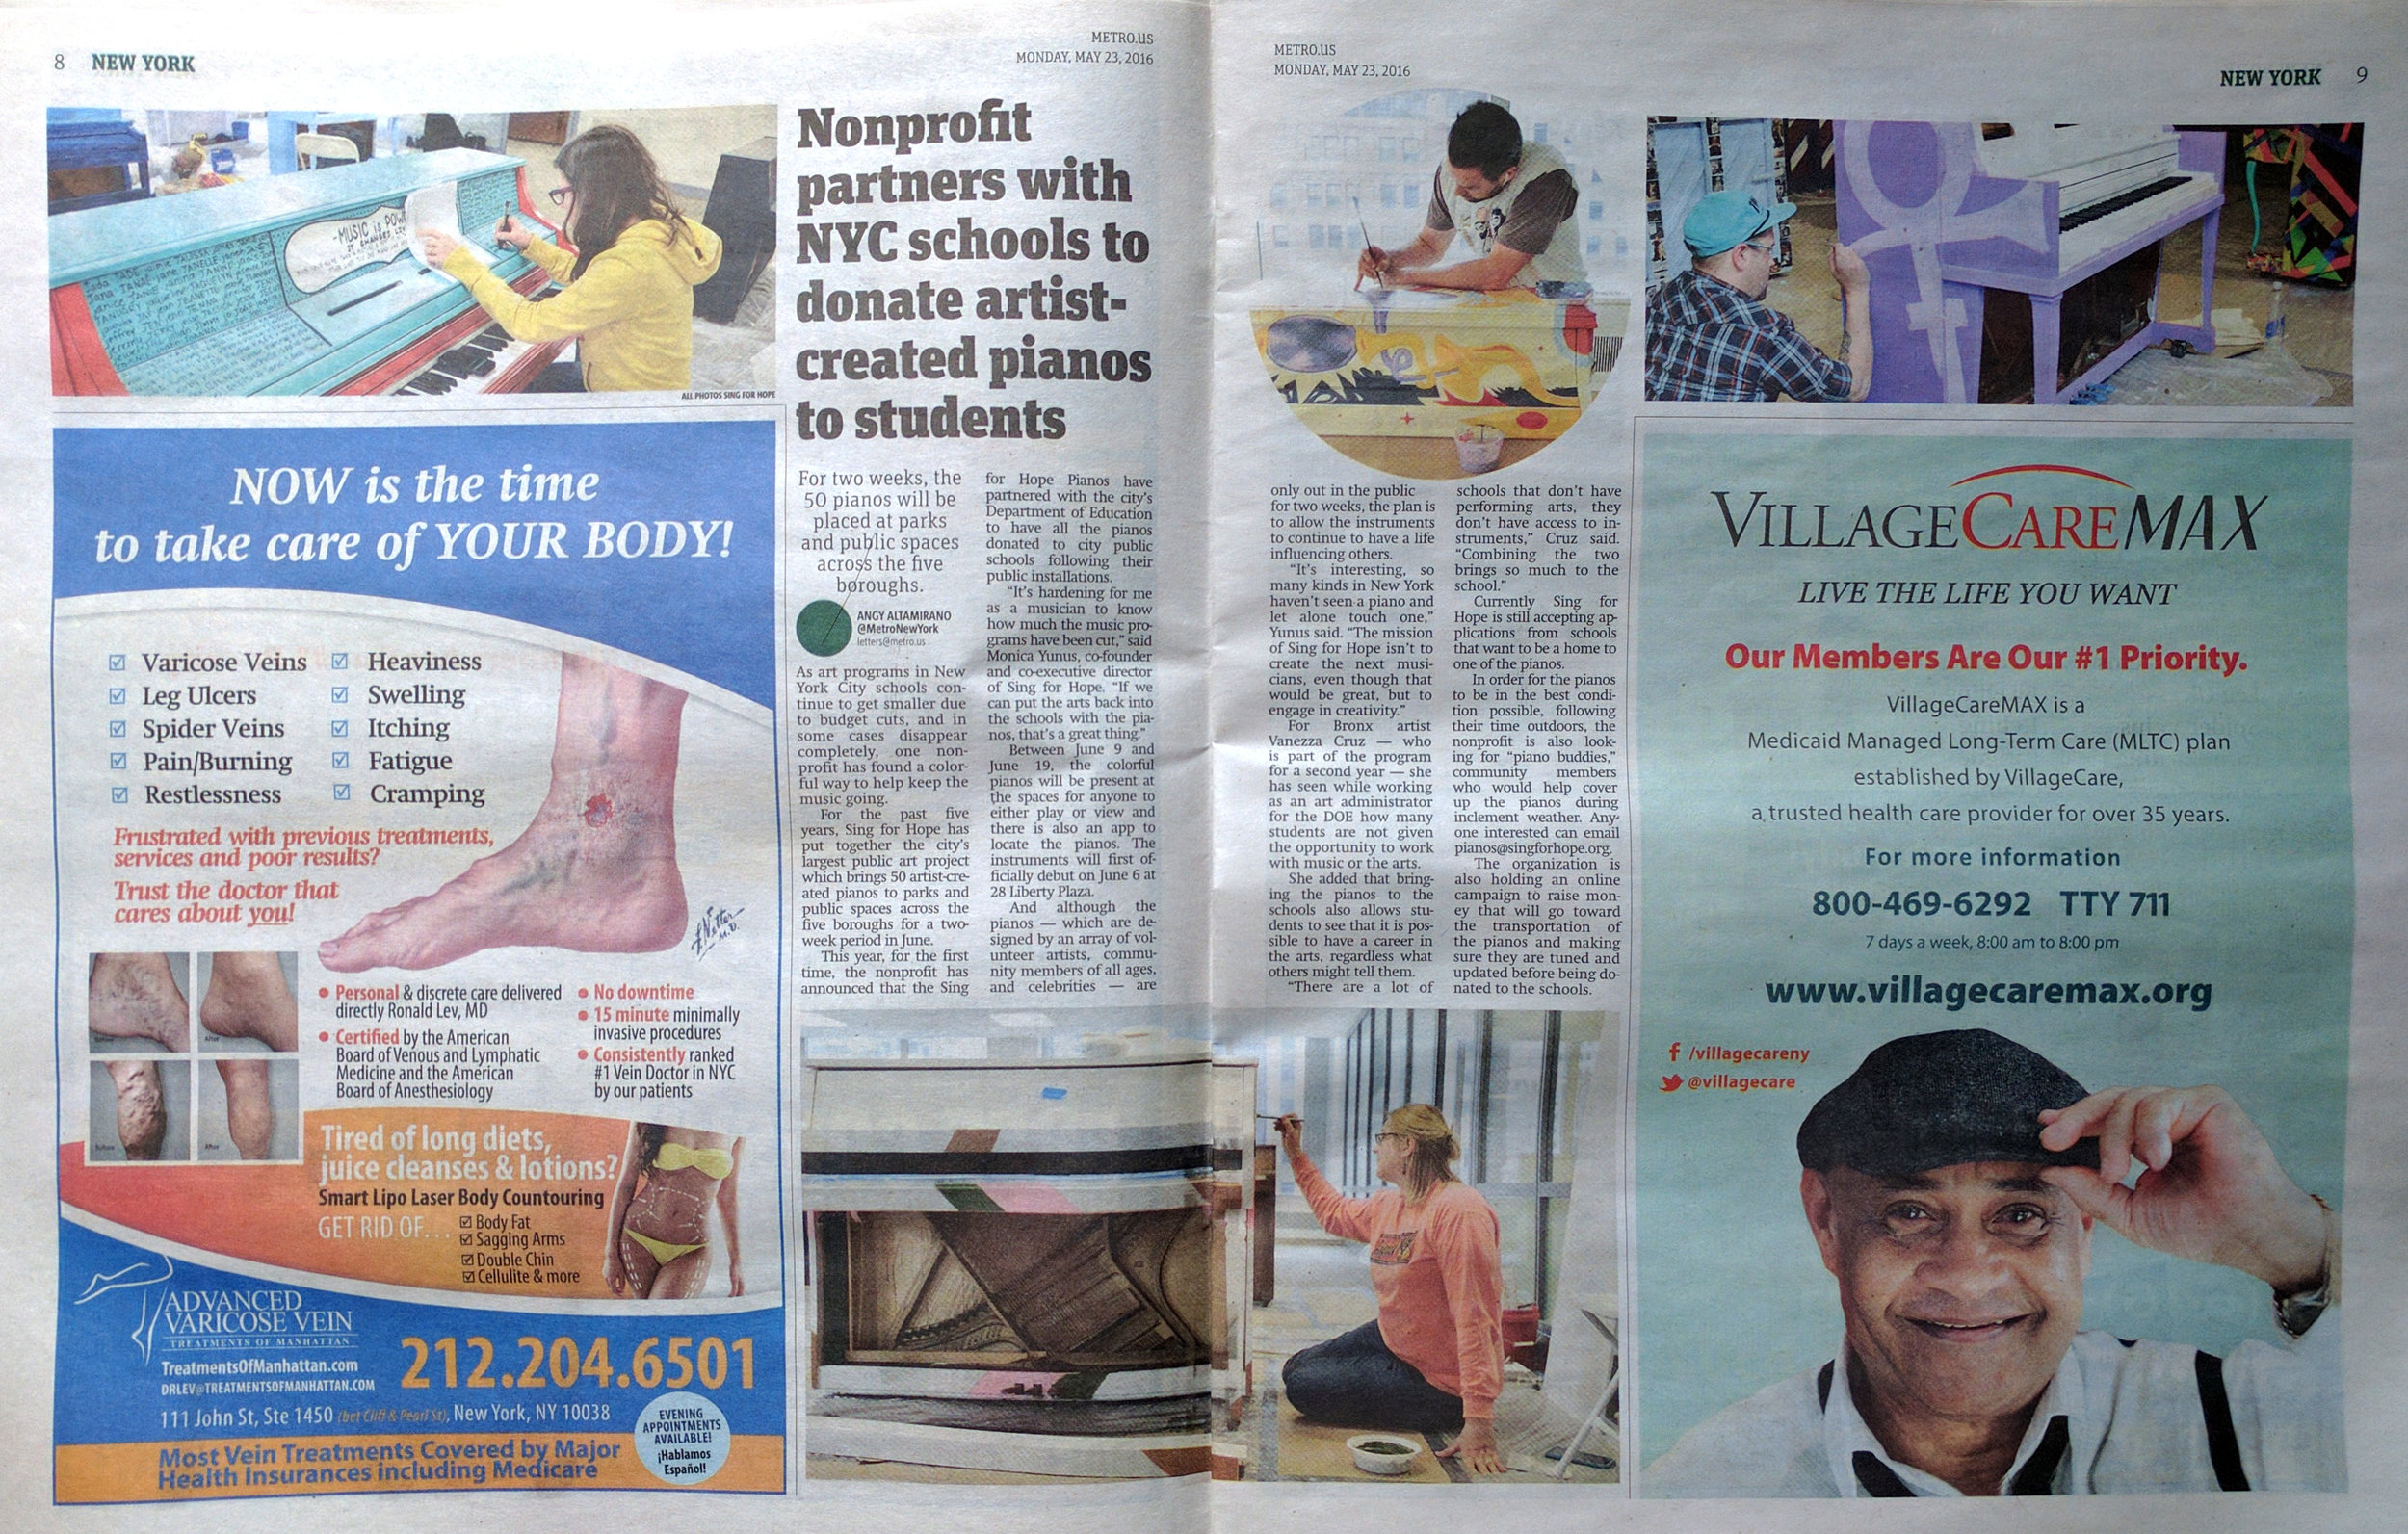 """Altamirano, Angy. """"Nonprofit partners with NYC schools to donate artist-created pianos to students.""""  Metro New York.  Metro, 23 May 2016. Print. (Charis is featured in the bottom photo.)"""